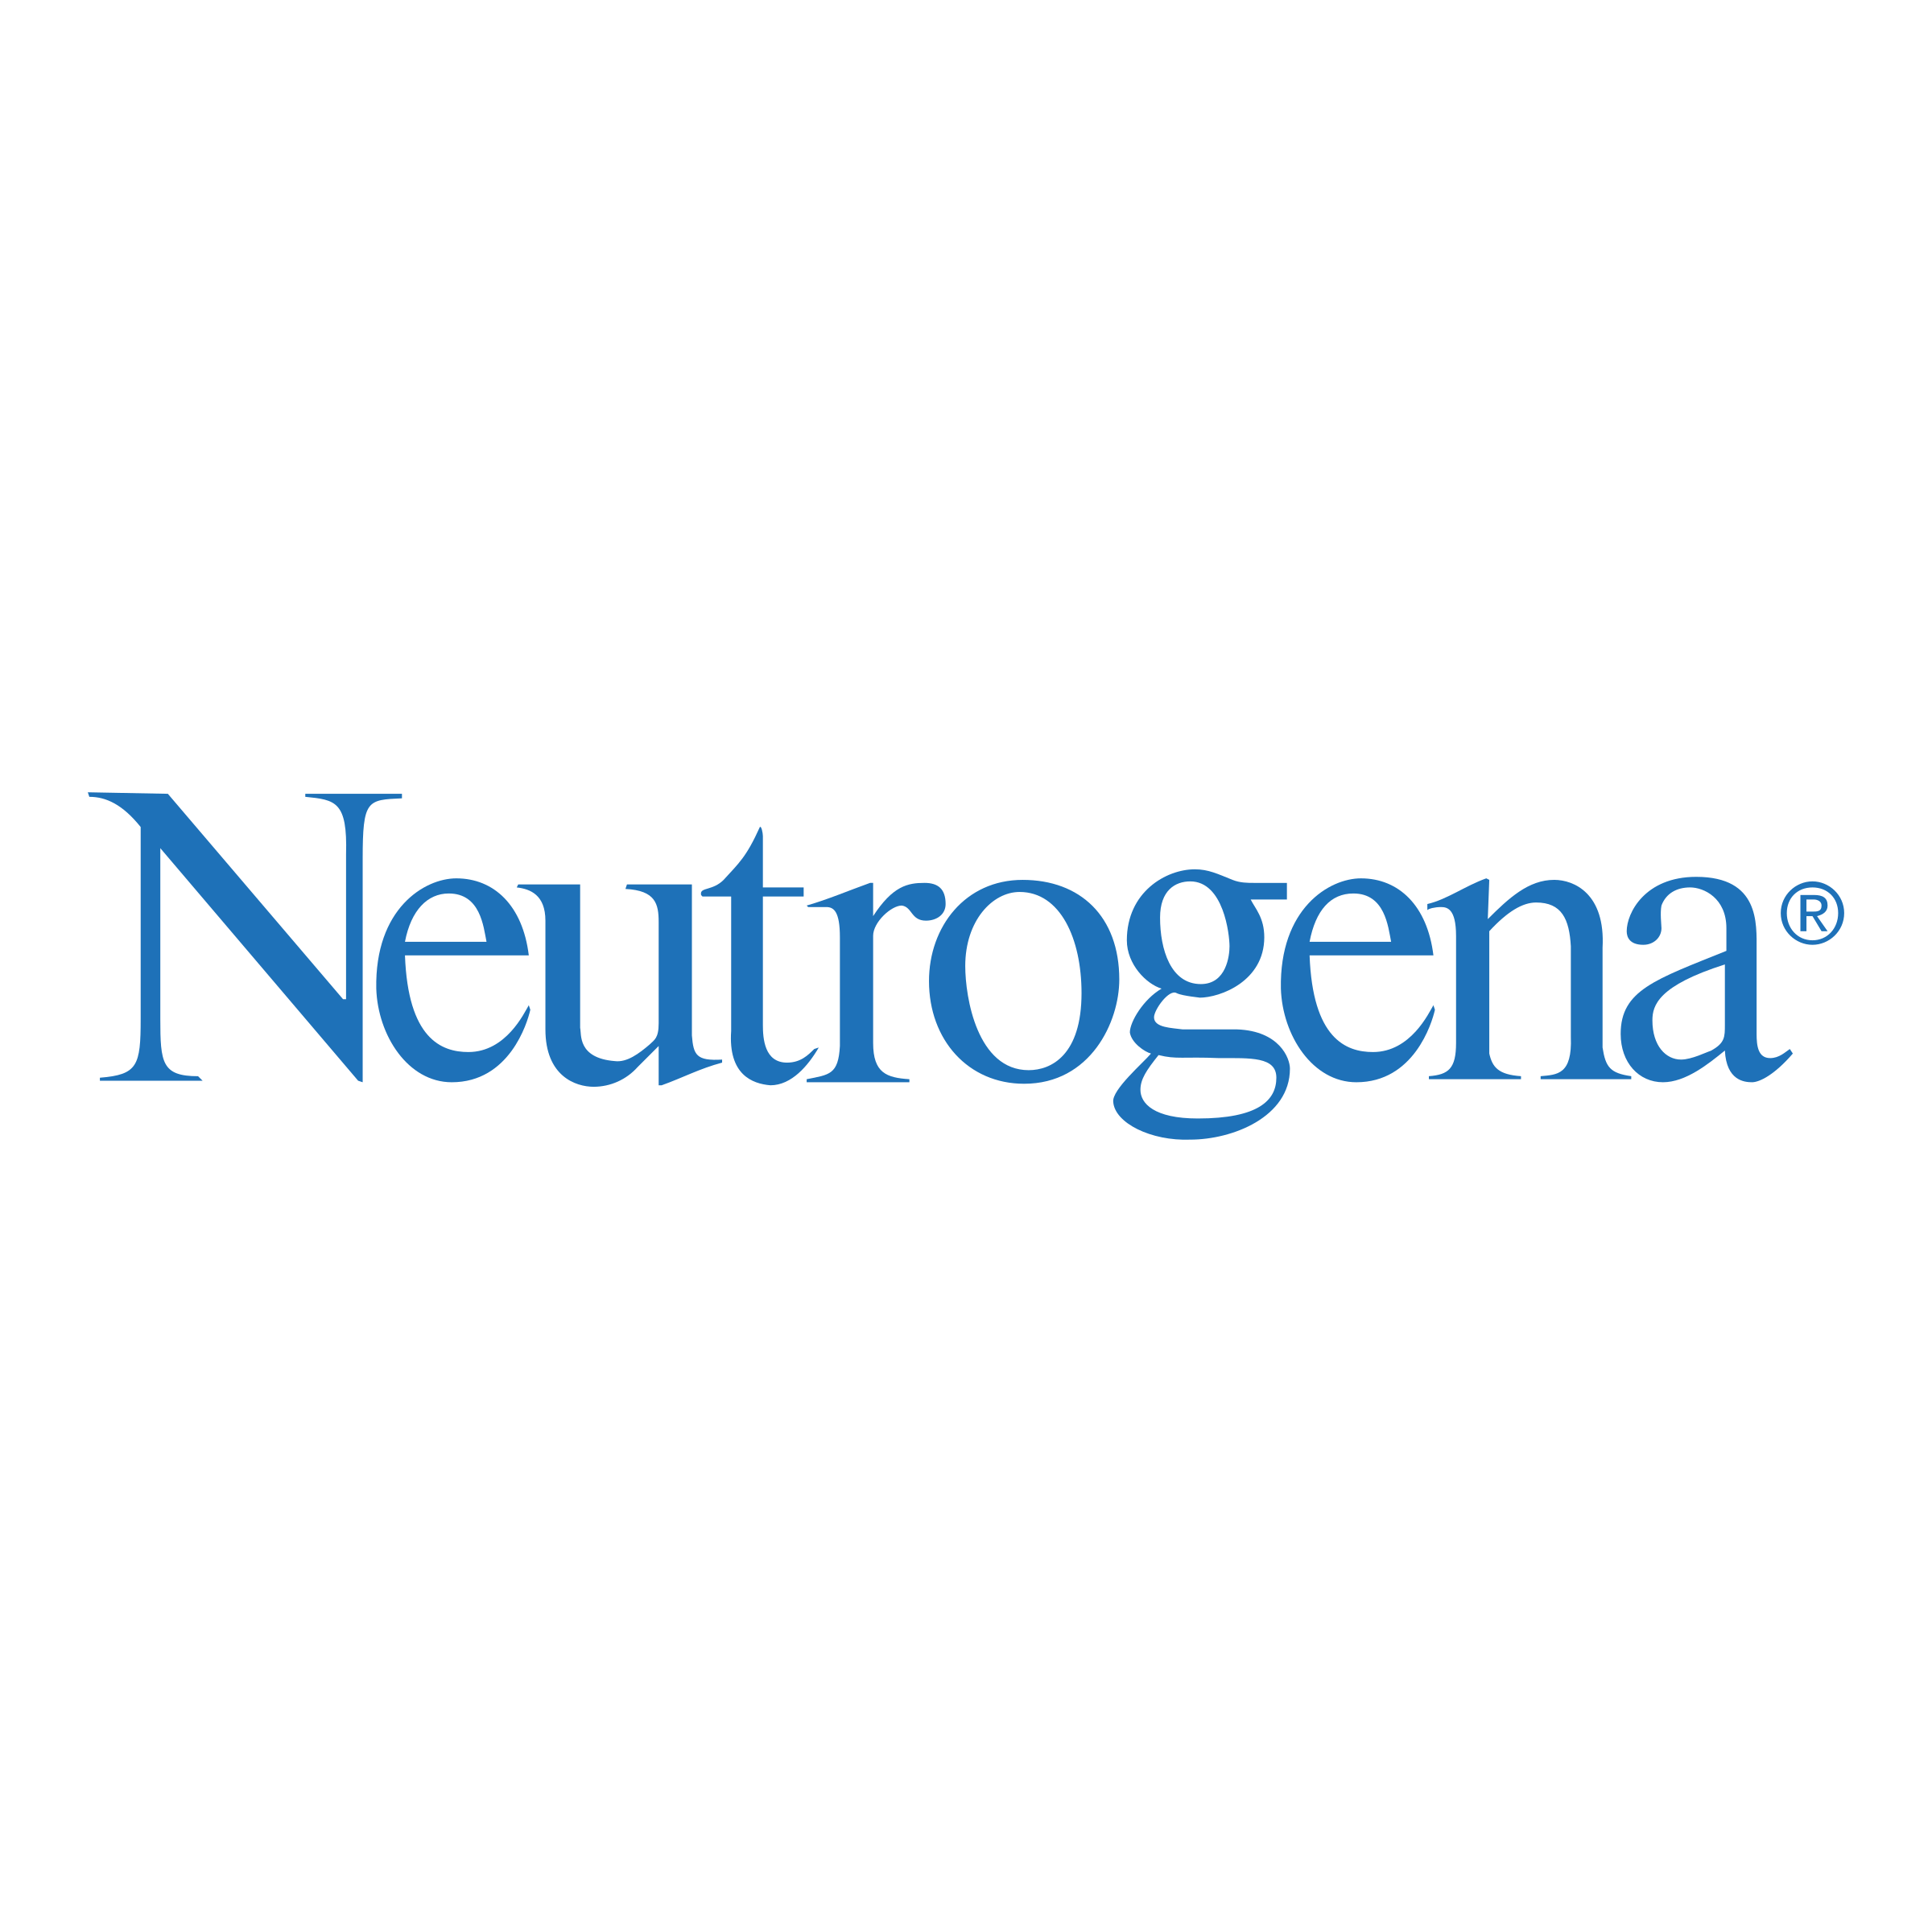 neutrogena-logo-png-transparent.png